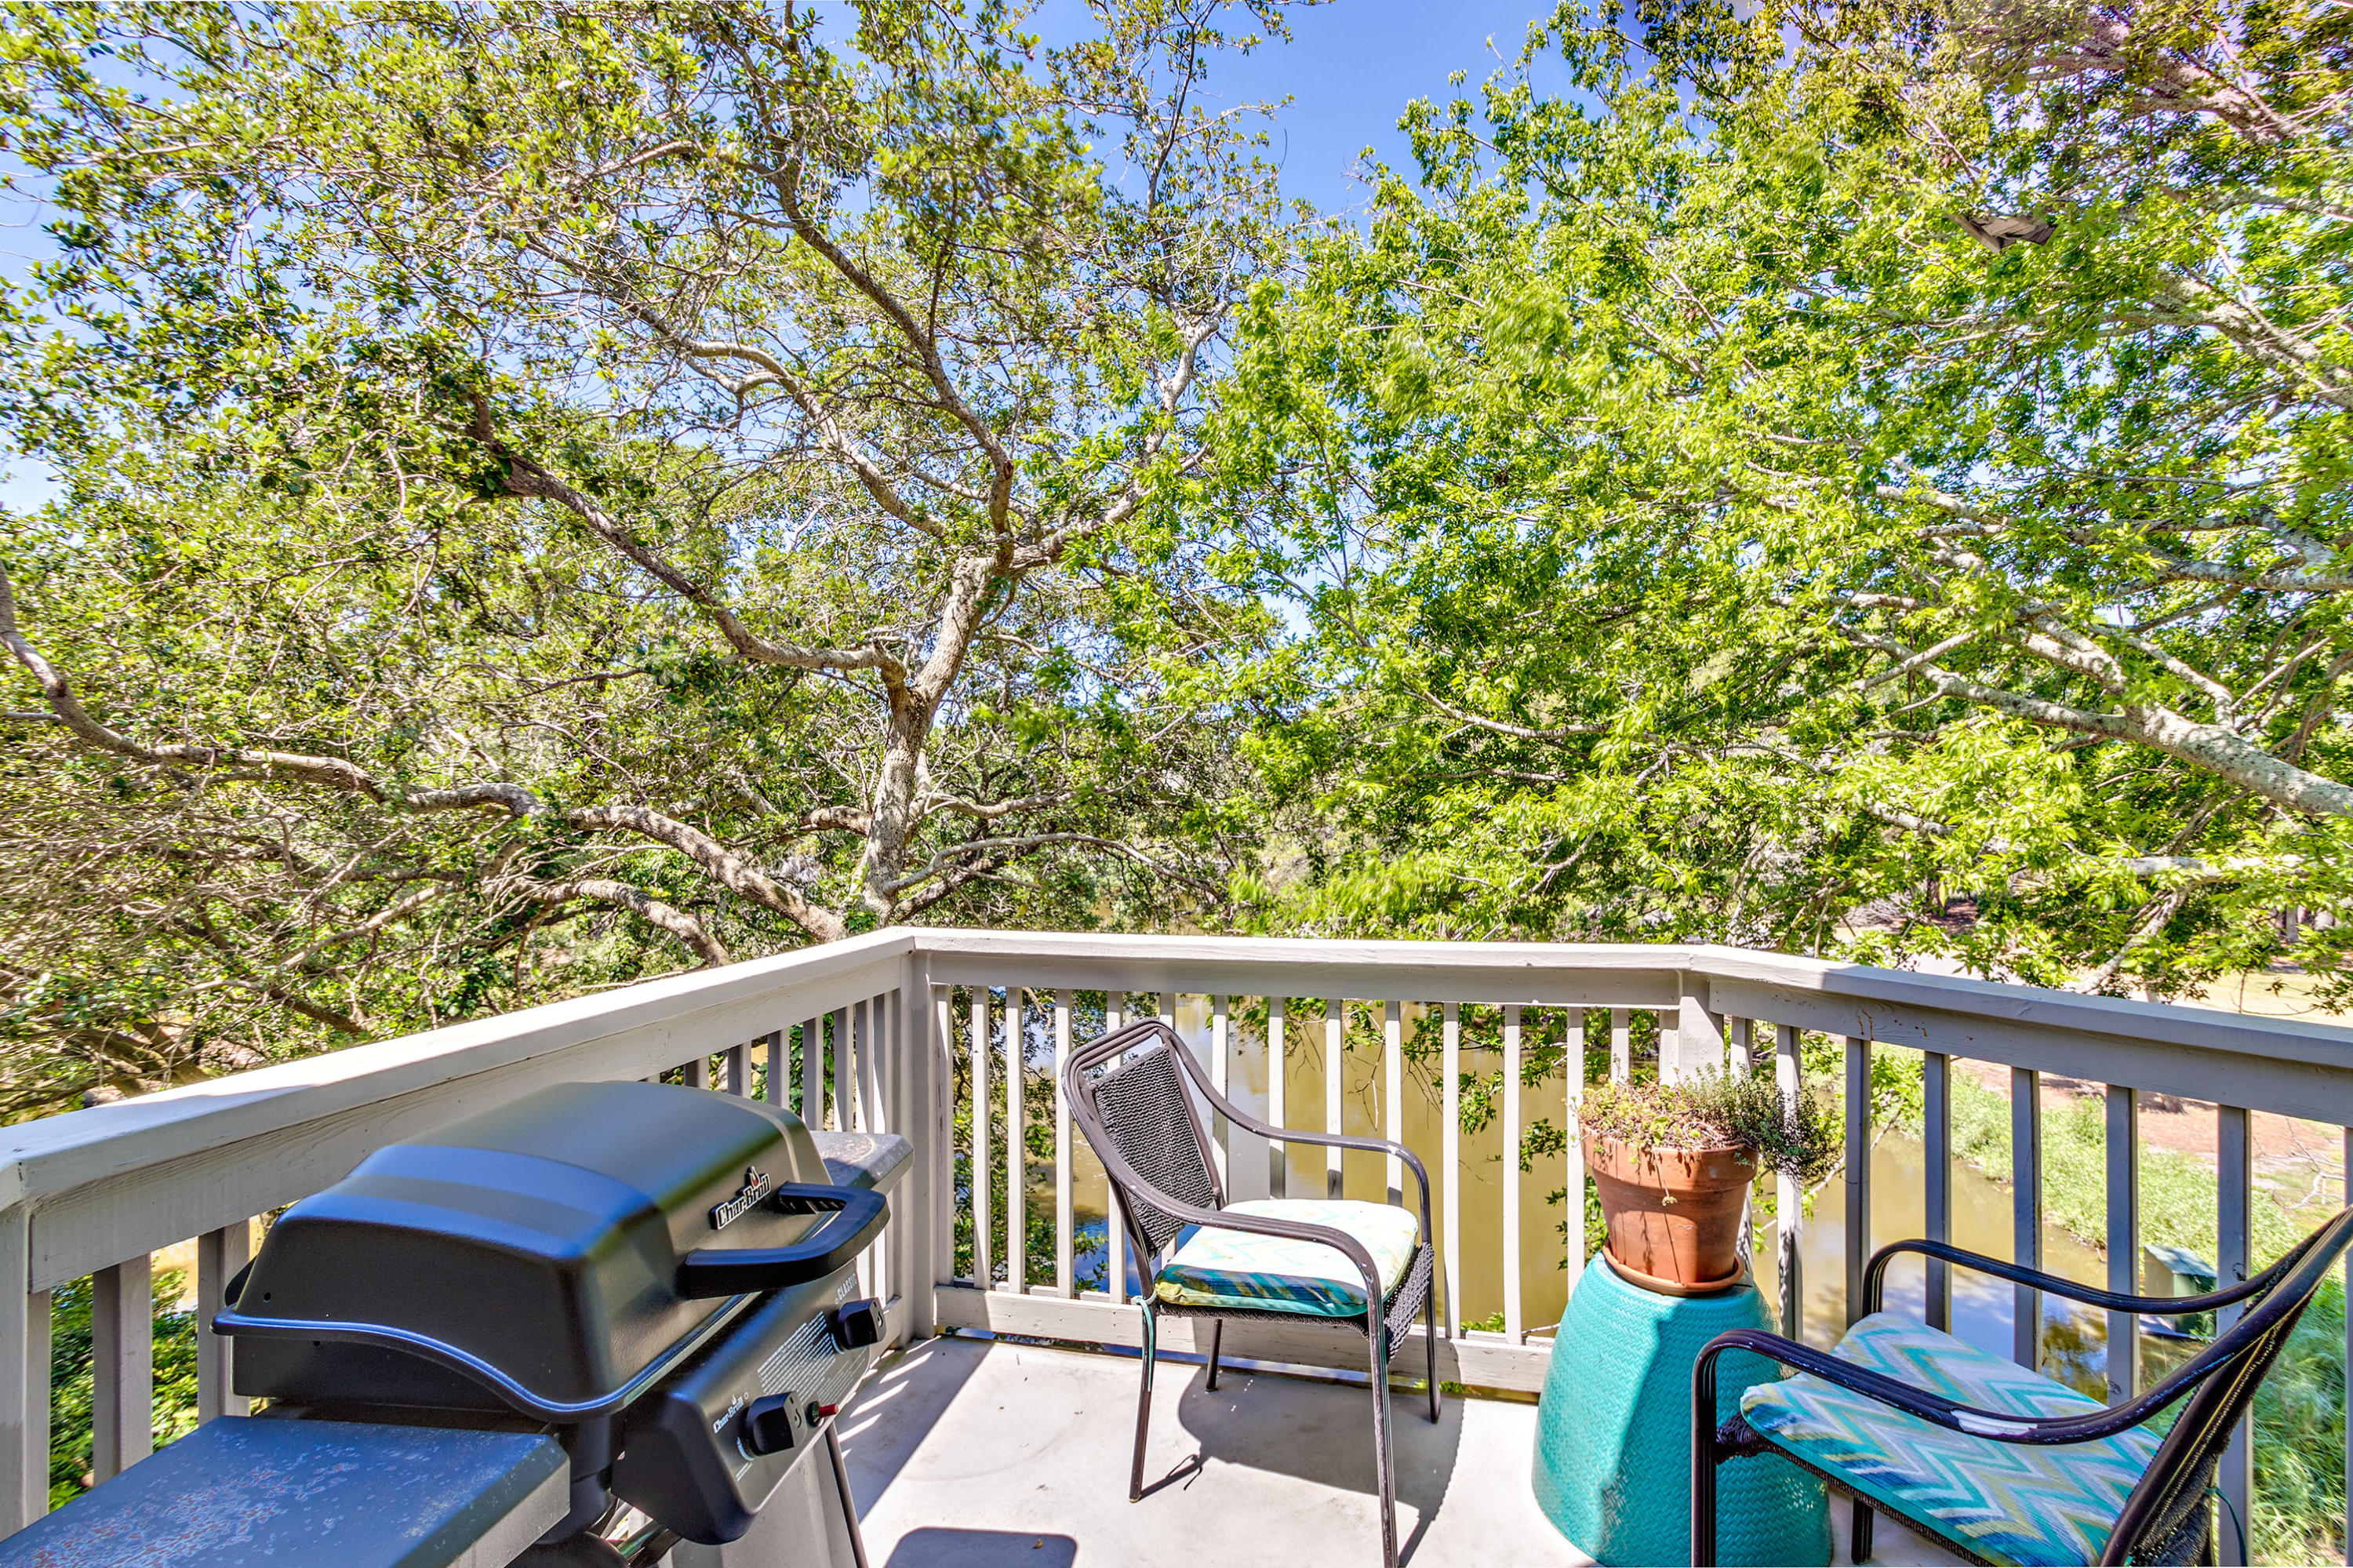 Mariners Cay Homes For Sale - 202 Mariners Cay, Folly Beach, SC - 21